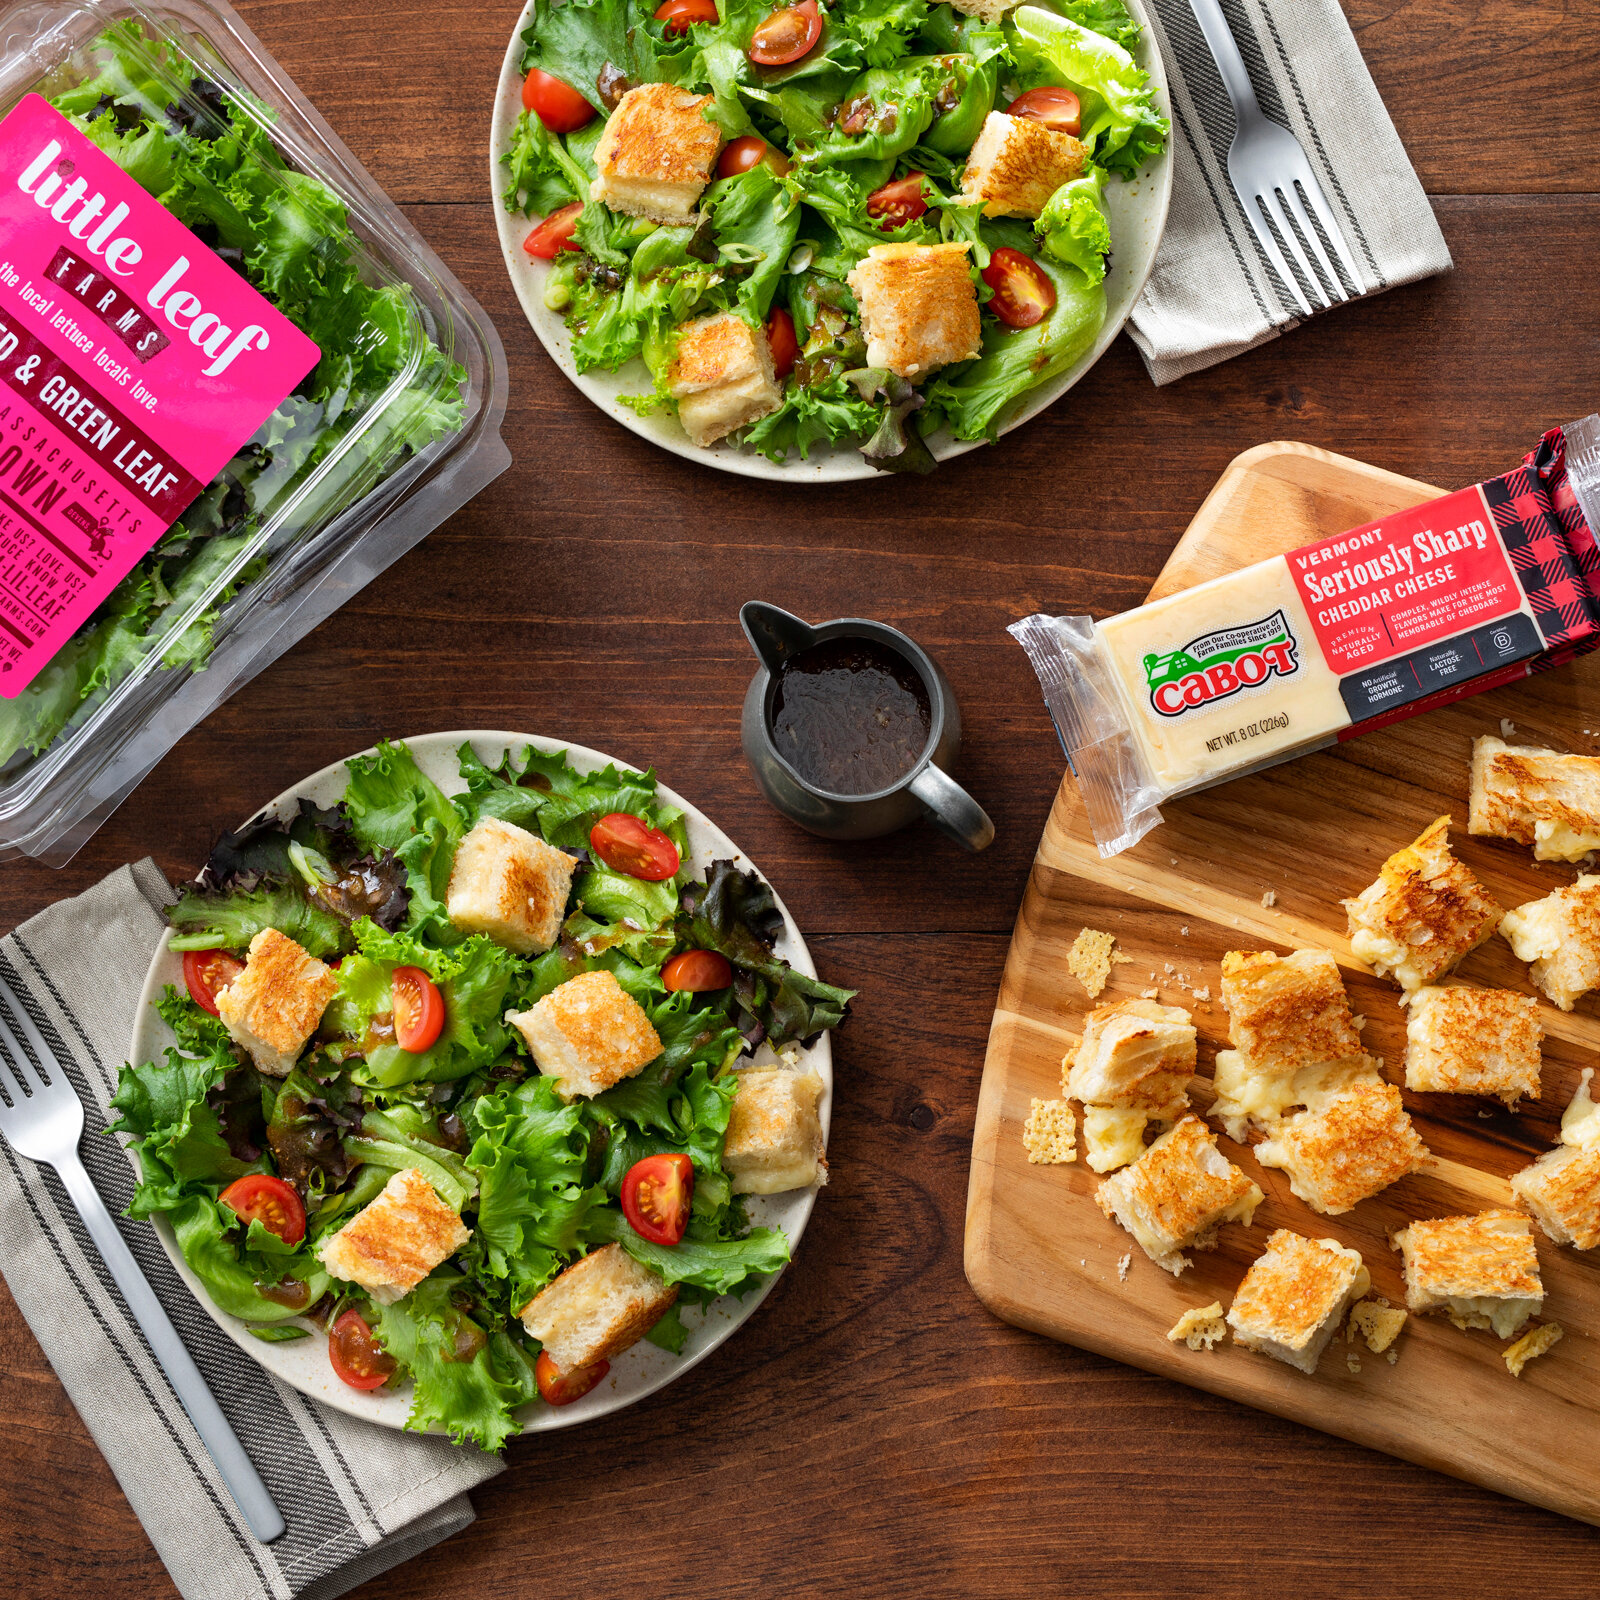 Mixed Greens with Grilled Cheese Croutons